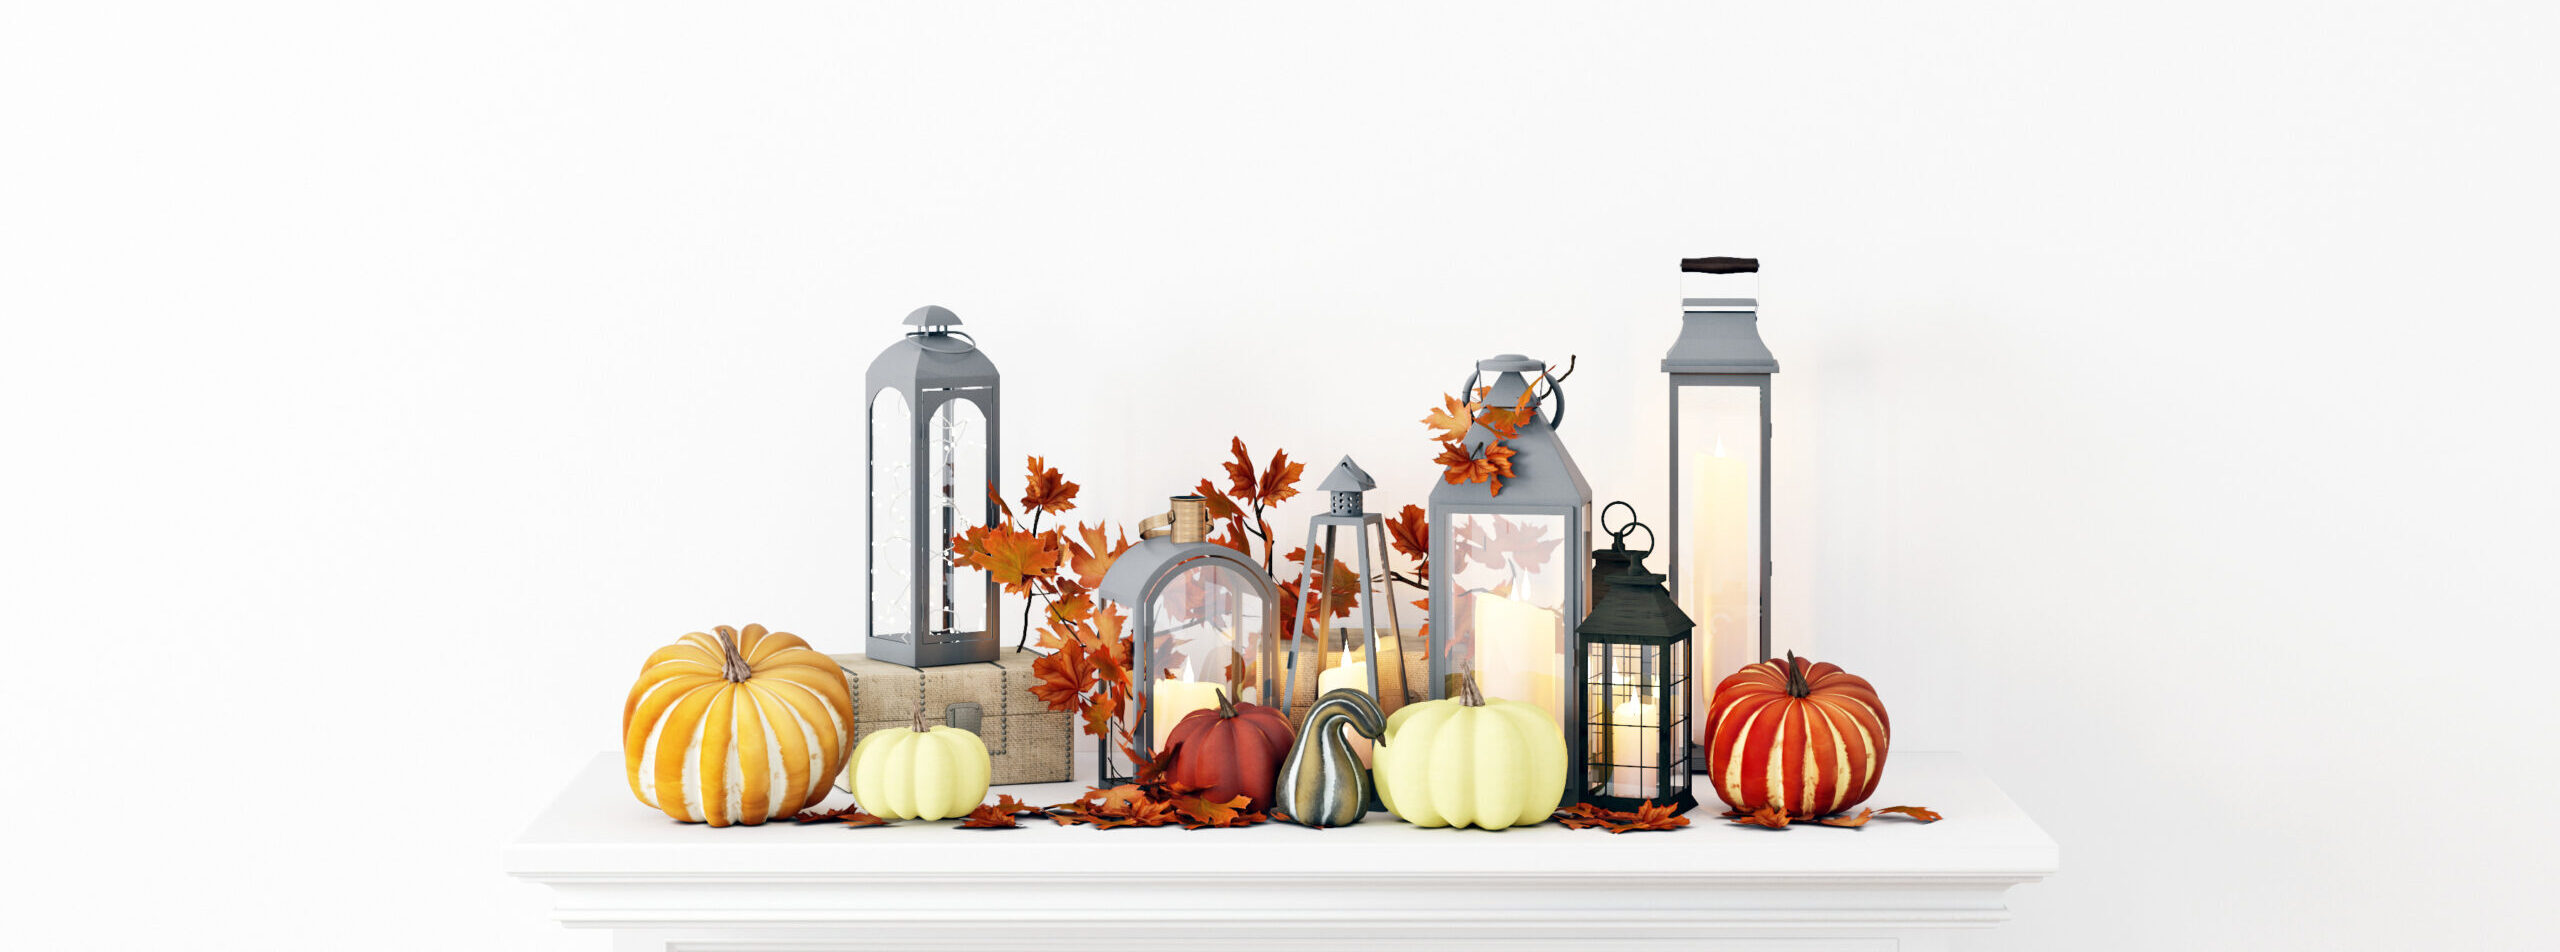 fall mantel decor with pumpkins leaves and lanterns in room in home